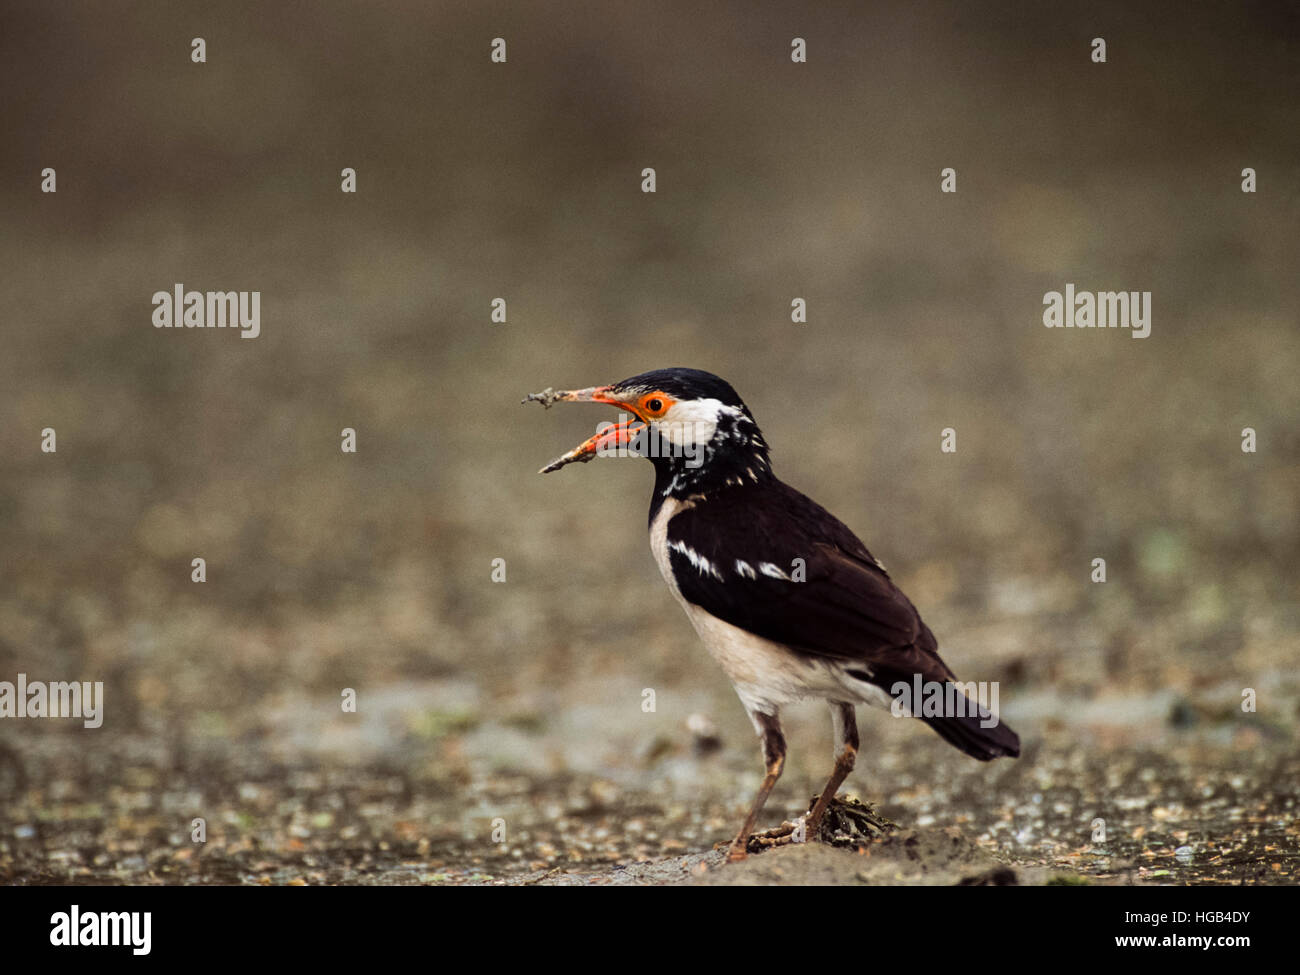 Pied Myna,(Gracupica contra),or Asian Pied Starling,with beak wide open to cool down,Keoladeo Ghana National Park,Rajastha,India - Stock Image